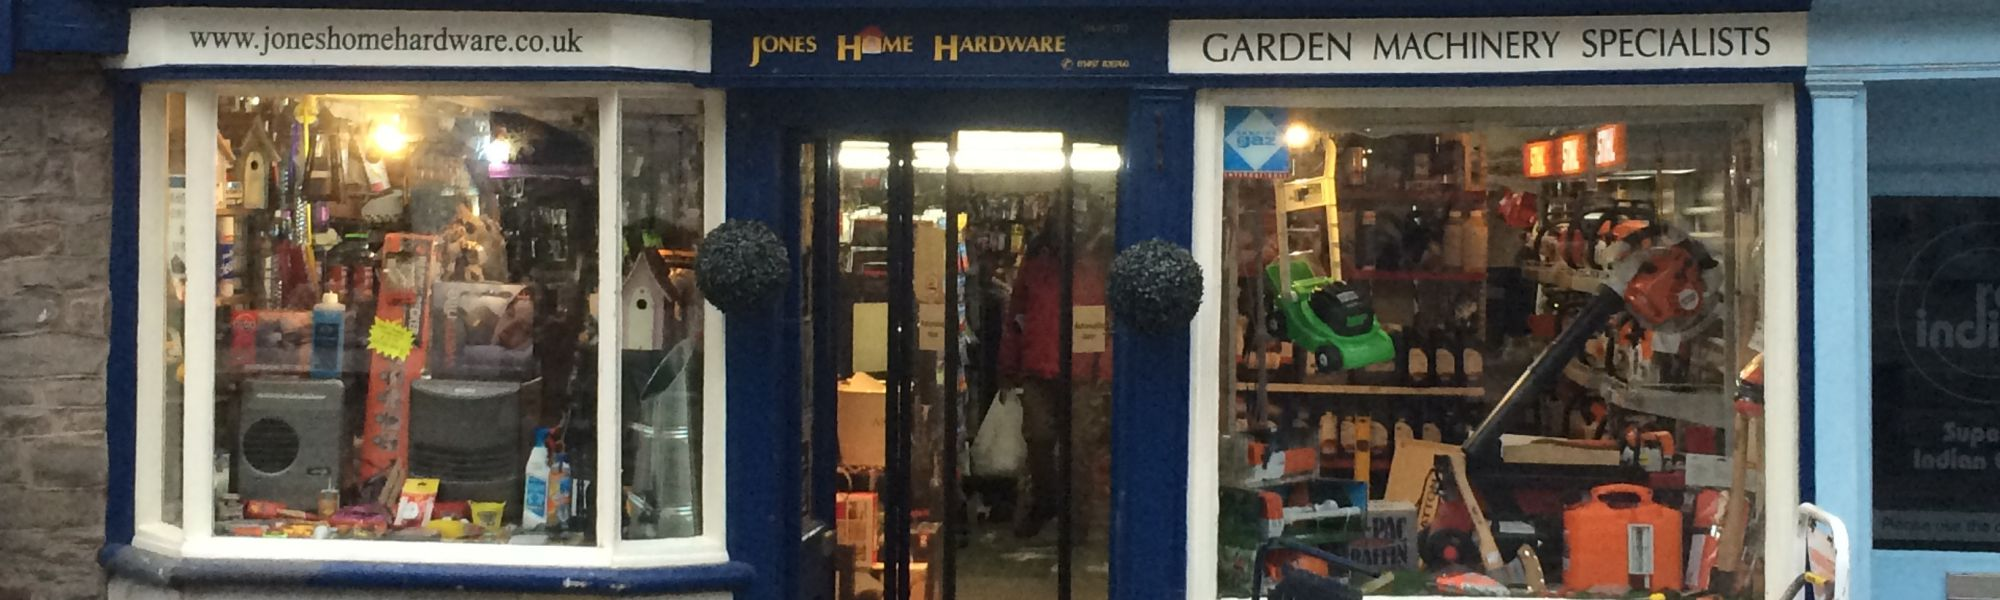 Jones Home Hardware in Hay-on-Wye